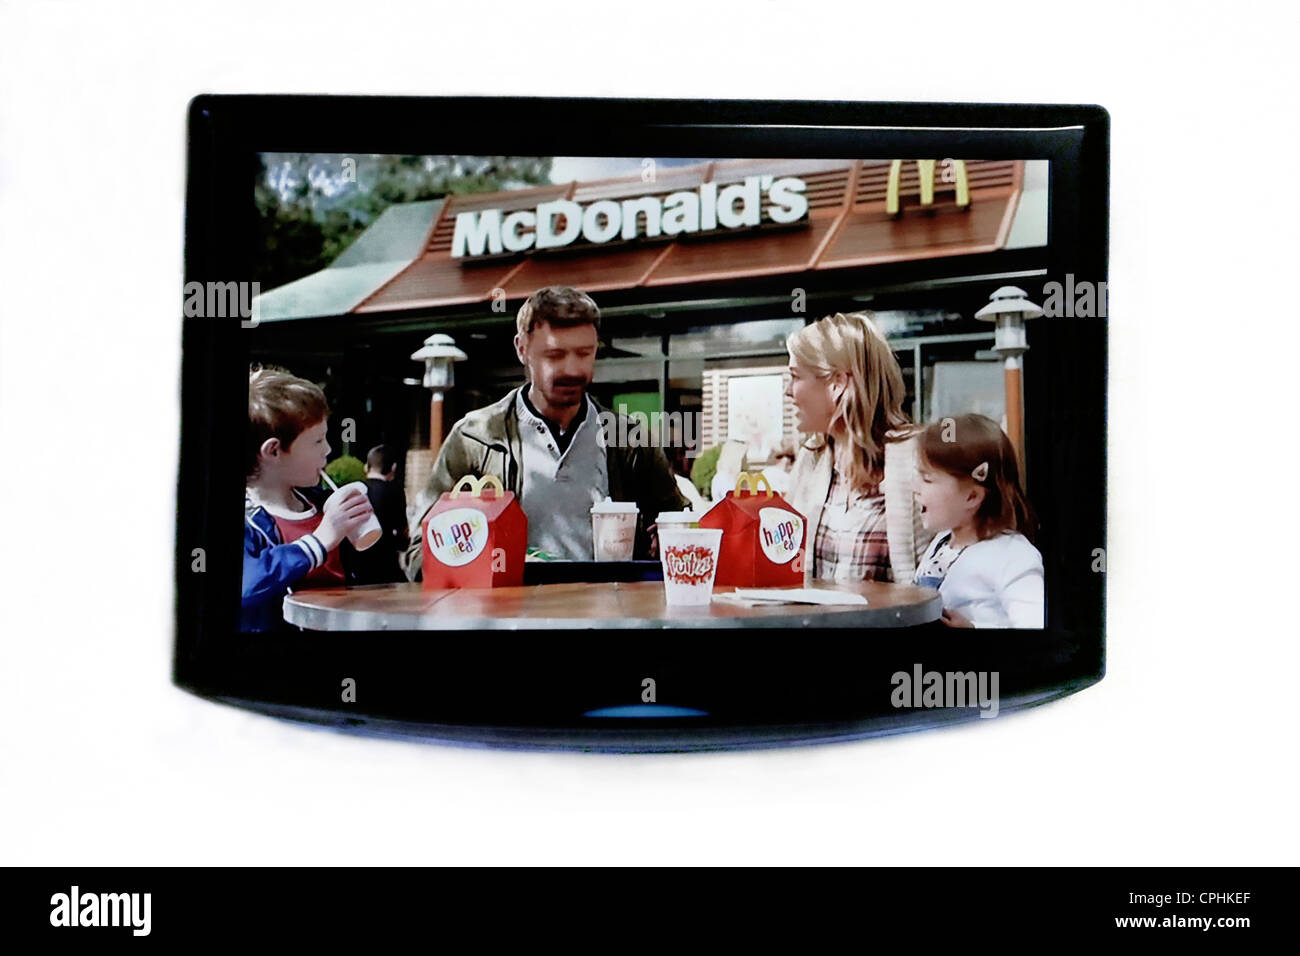 Samsung Flat Screen HD Television Showing Advert For